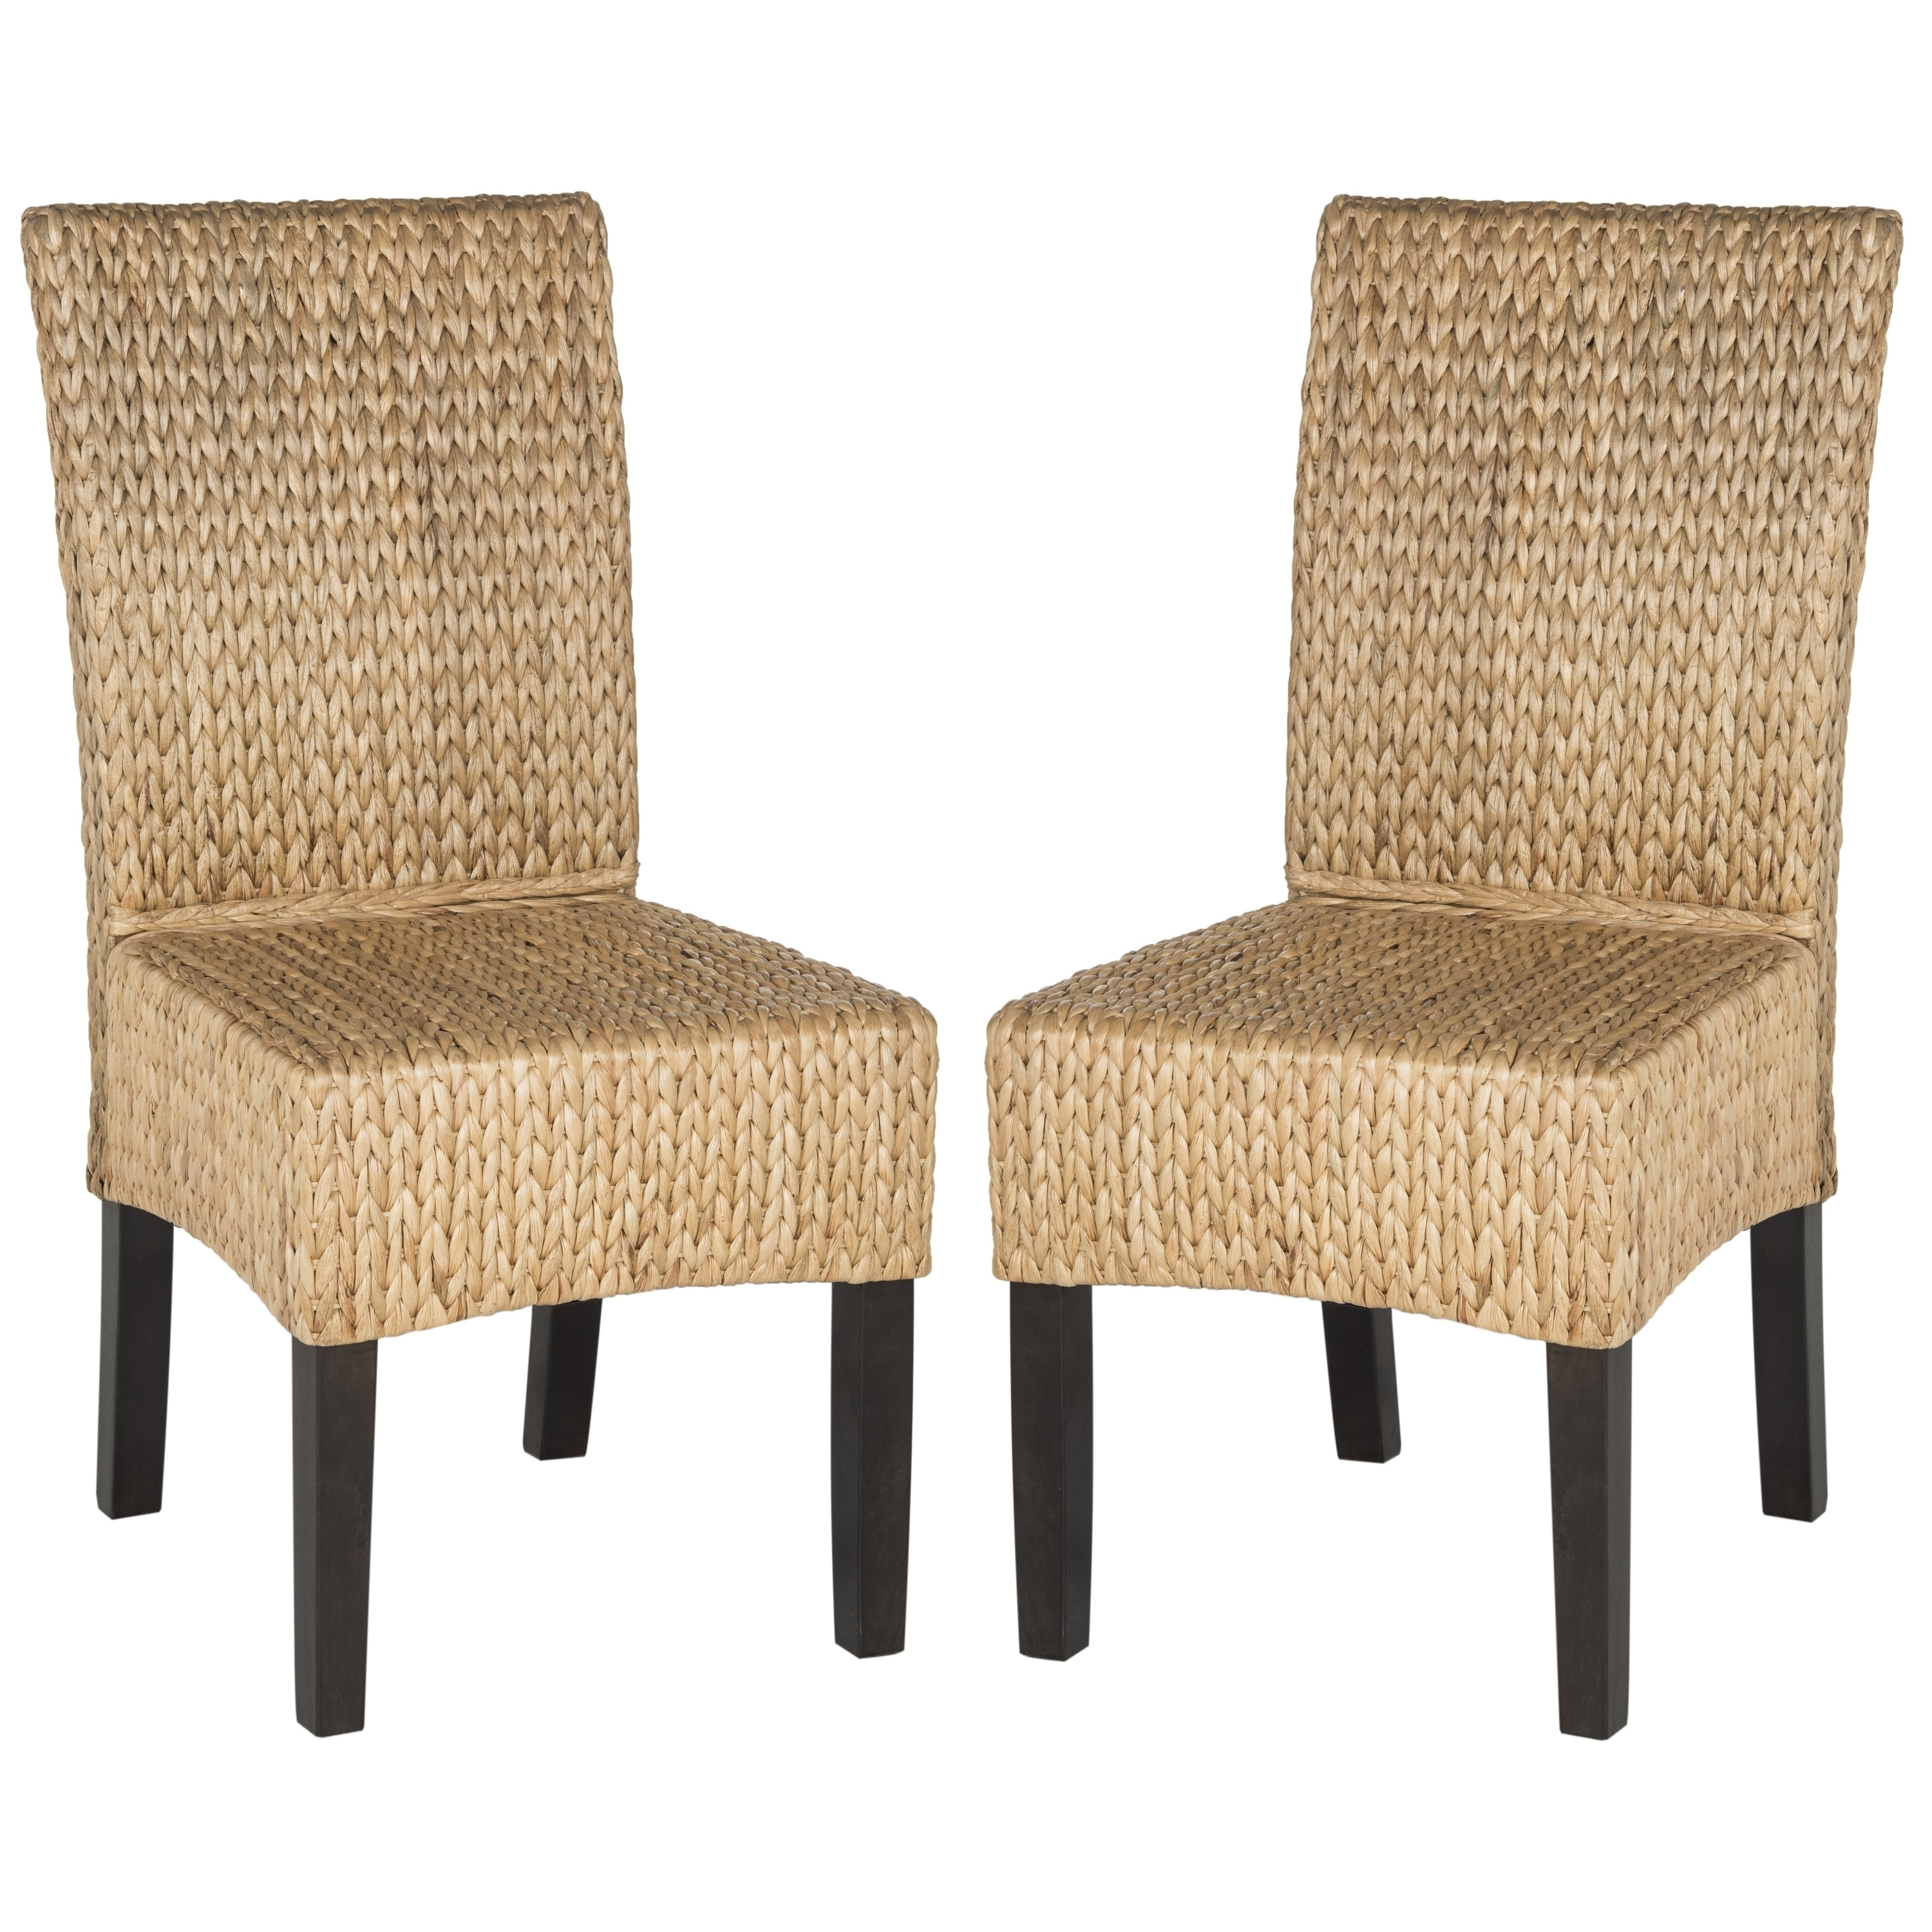 Woven Dining Chair Safavieh Rural Woven Dining Luz Natural Dining Chairs Set Of 2